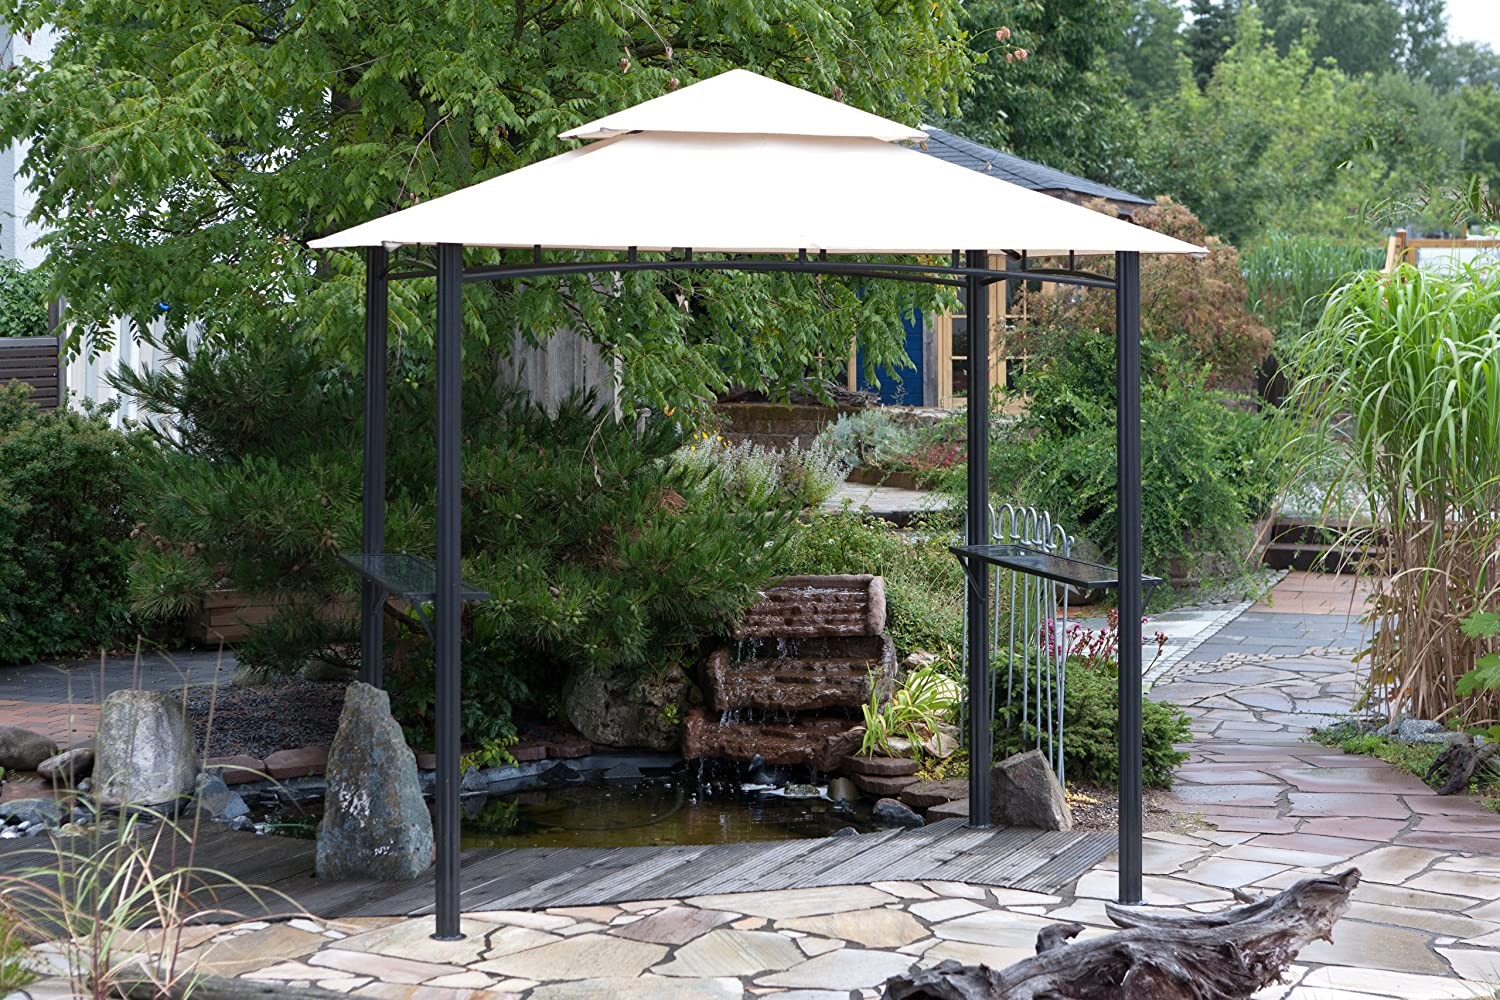 hayneedle costco lowes living ideas grill with steel bbq furniture bunnings gazebo pergola of patio full retractable gazebos clearance canopy size shades sears outdoor belham awning